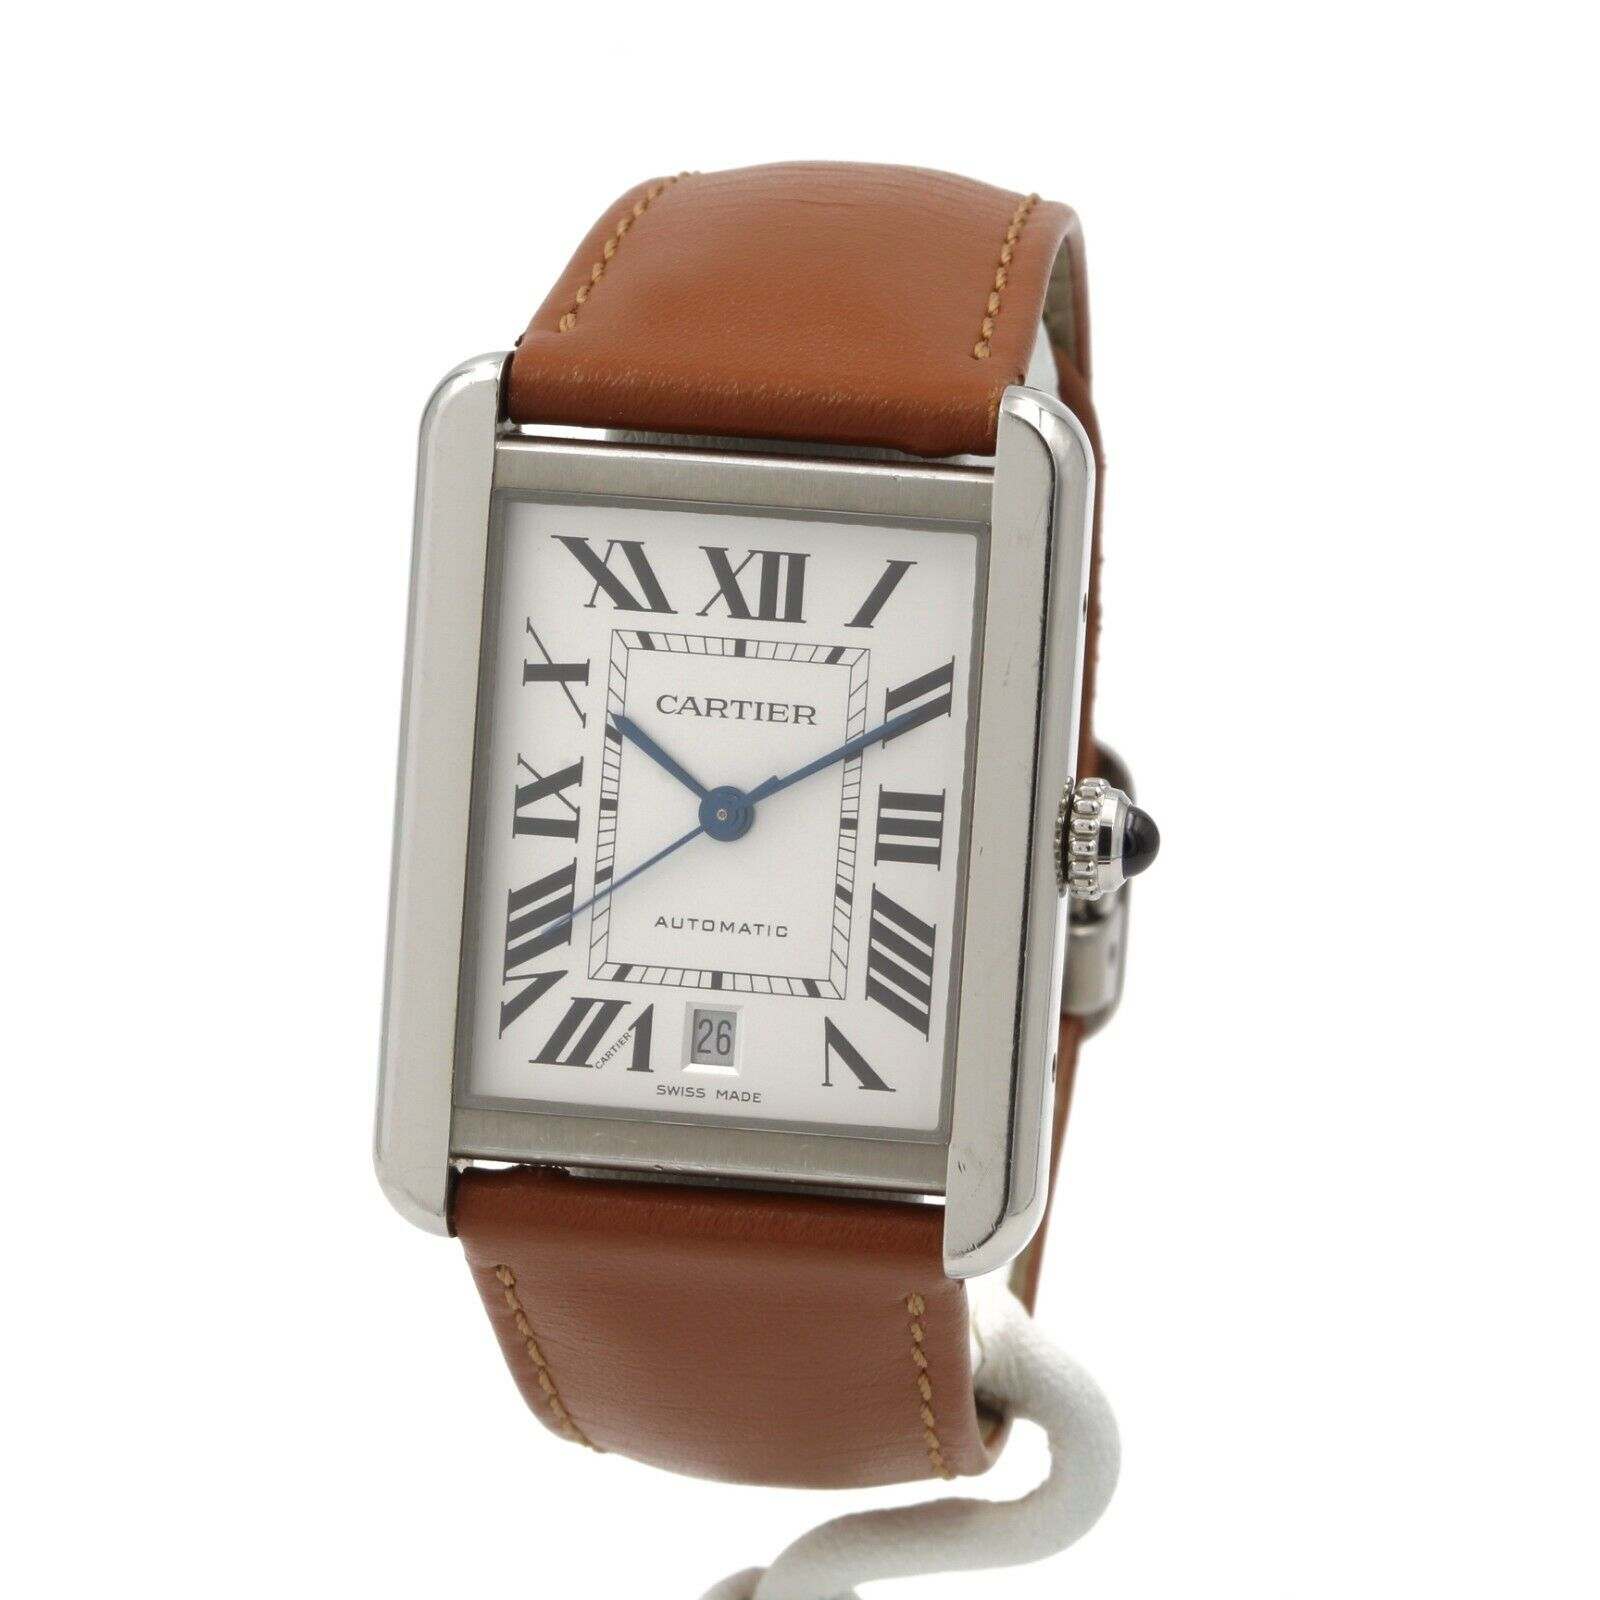 CARTIER TANK XL SOLO 3800 STAINLESS STEEL 595361YX BOX PAPERS NO RESERVE #8731 - watch picture 1